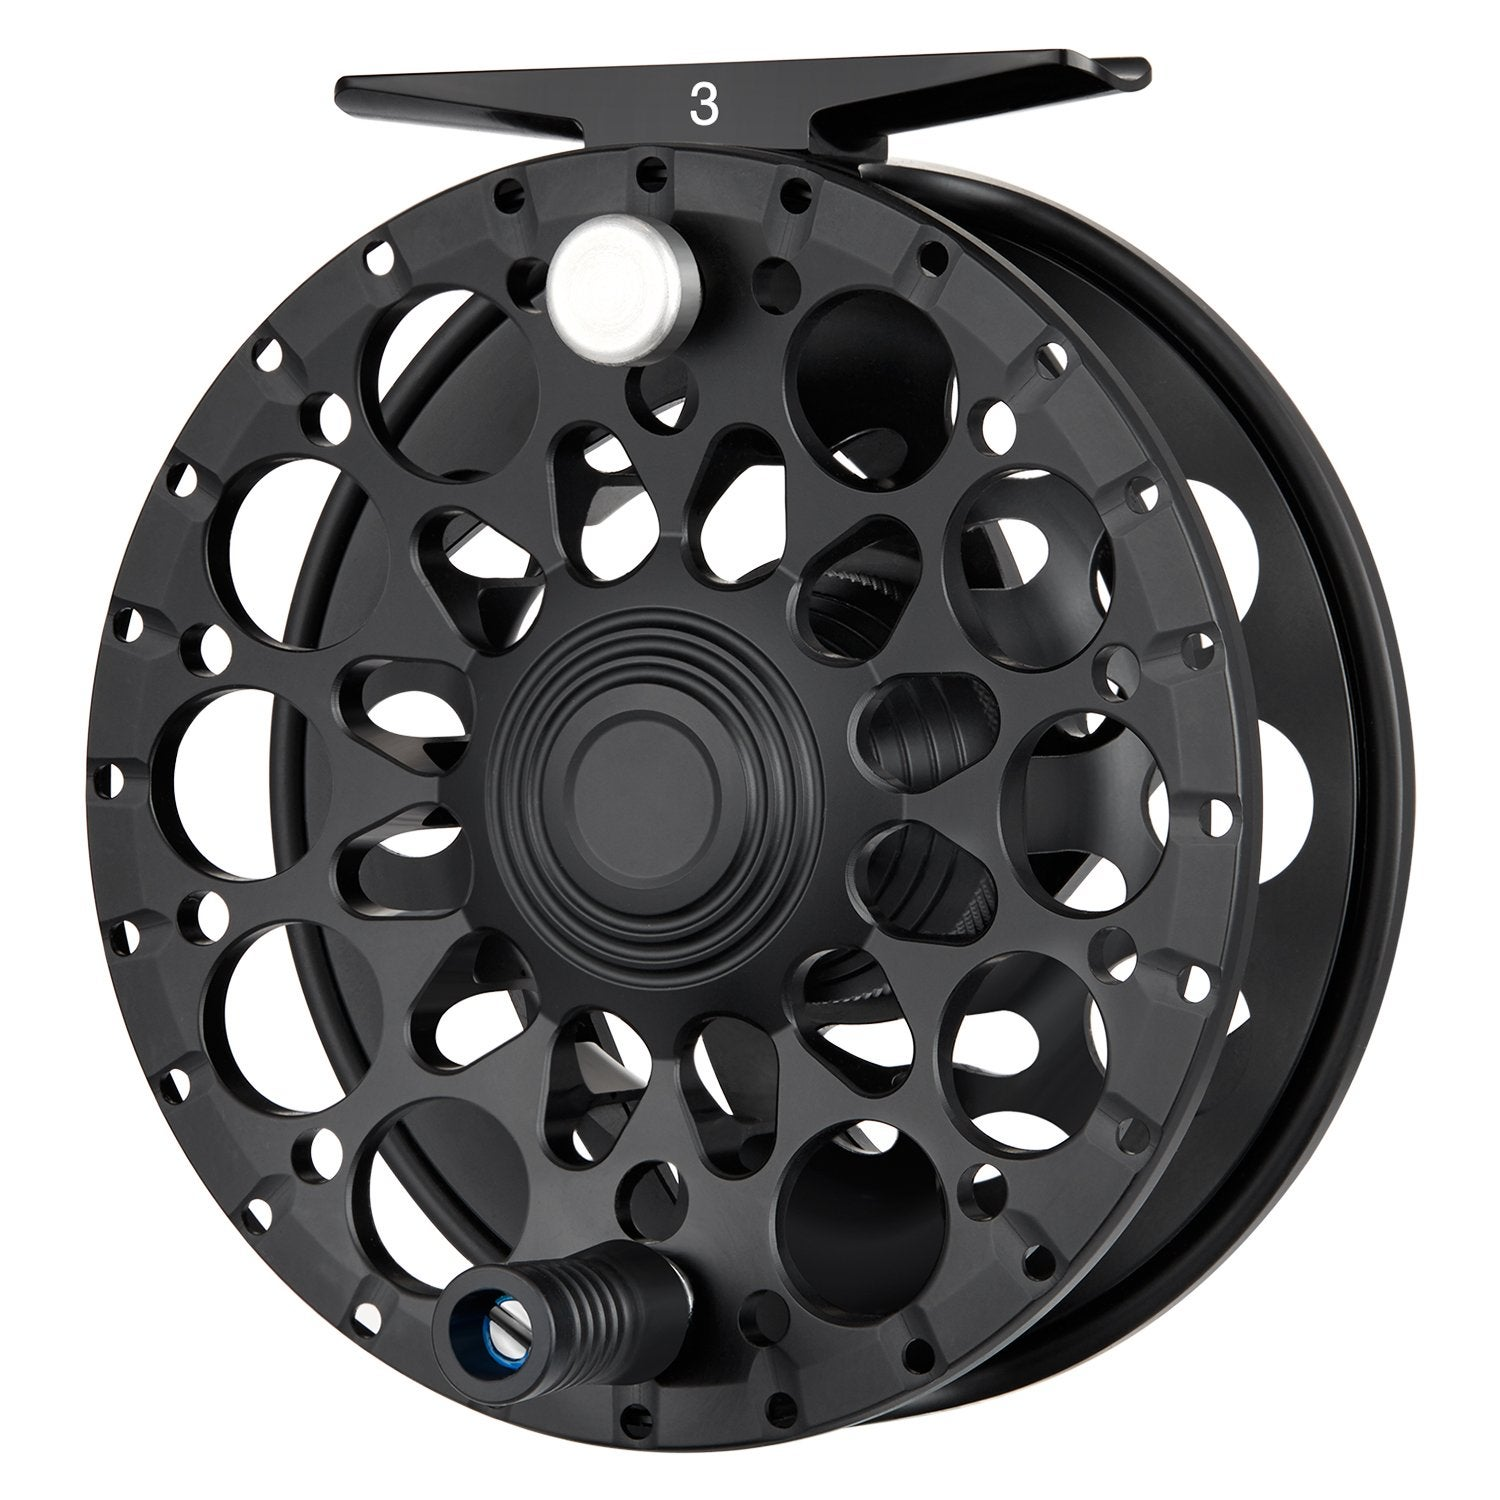 Piscifun Crest Fully Sealed Drag Large Arbor Fly Fishing Reel